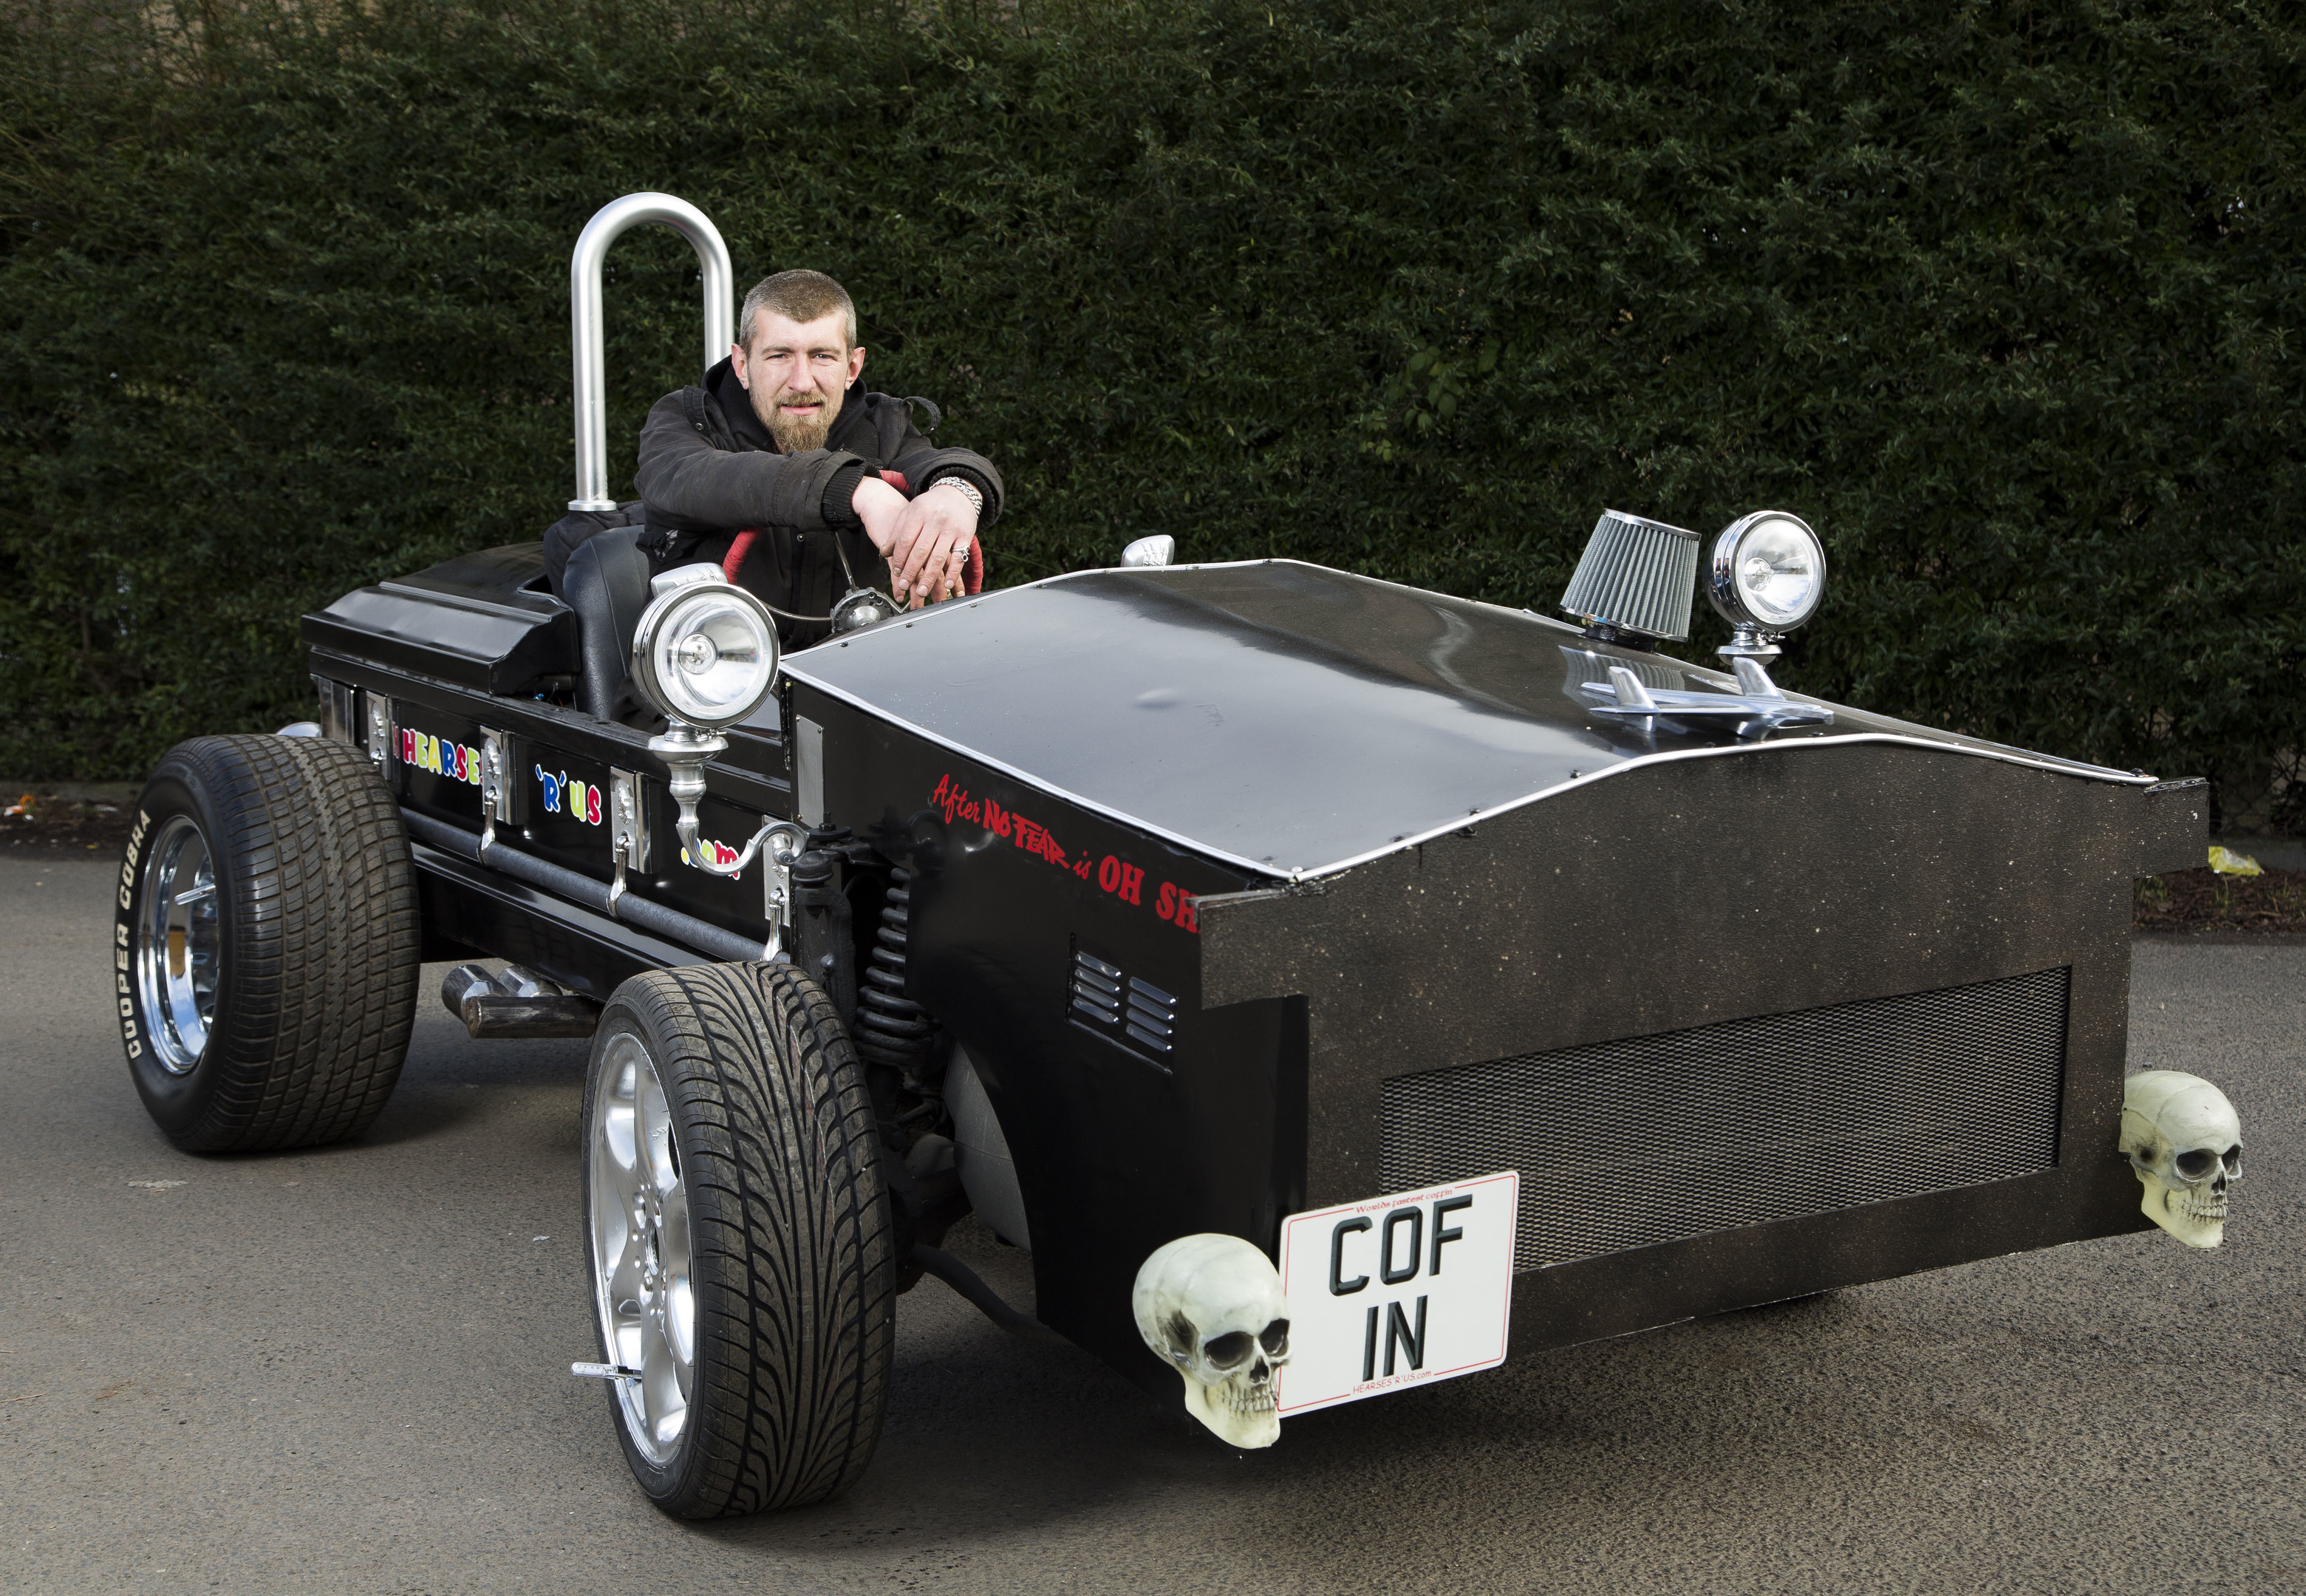 Allan Brant is aiming to break the World speed record for a coffin (James Williamson)